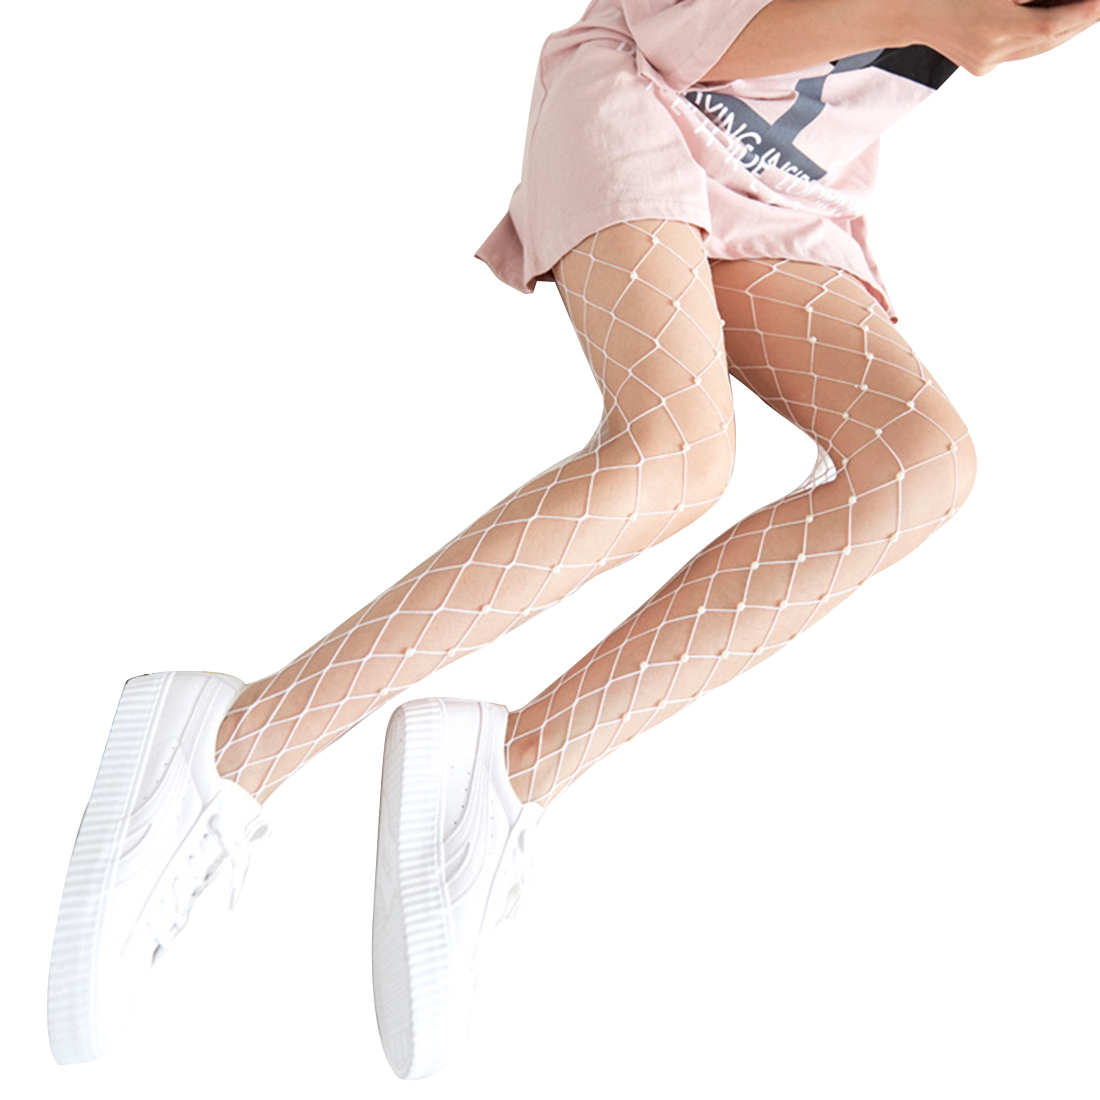 e80cf71295dc6 Detail Feedback Questions about Fashion Chic Women's Fashion Tights  Imitation Pearls Fishnet Stockings Ladies Hollow out Mesh Fishnet Pantyhose  Female ...